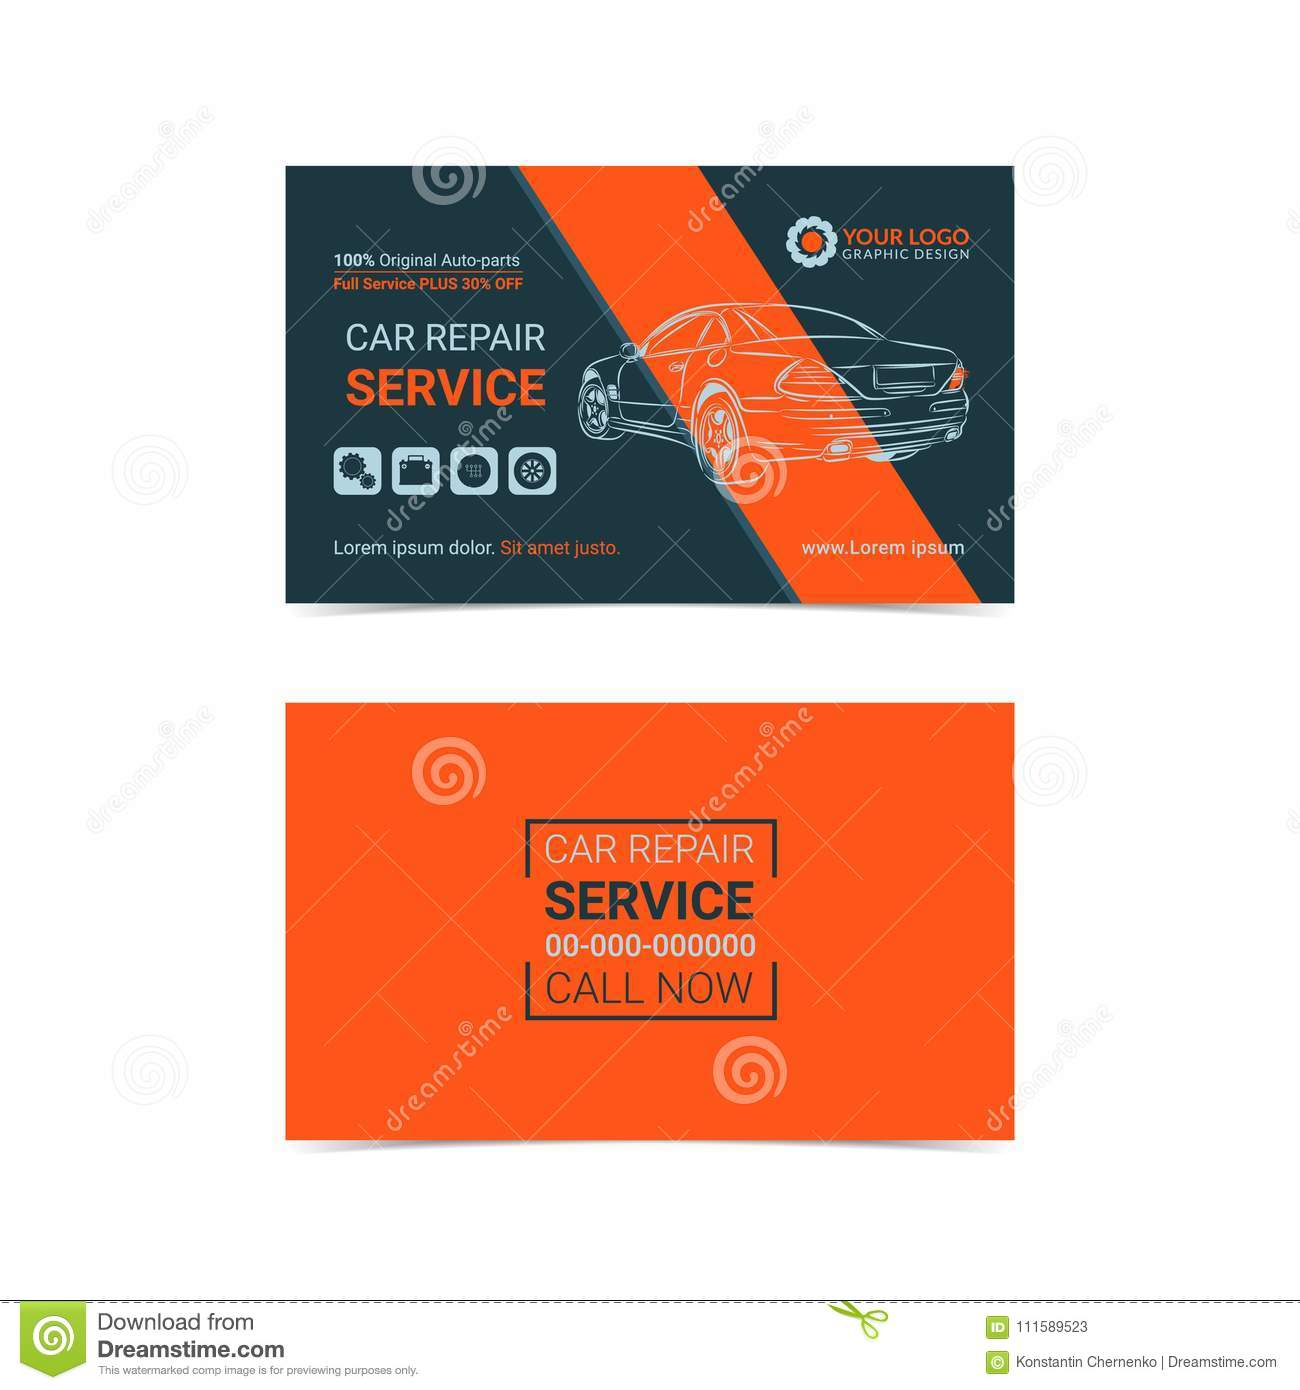 Automotive Repair Service Business Cards Layout Templates Create